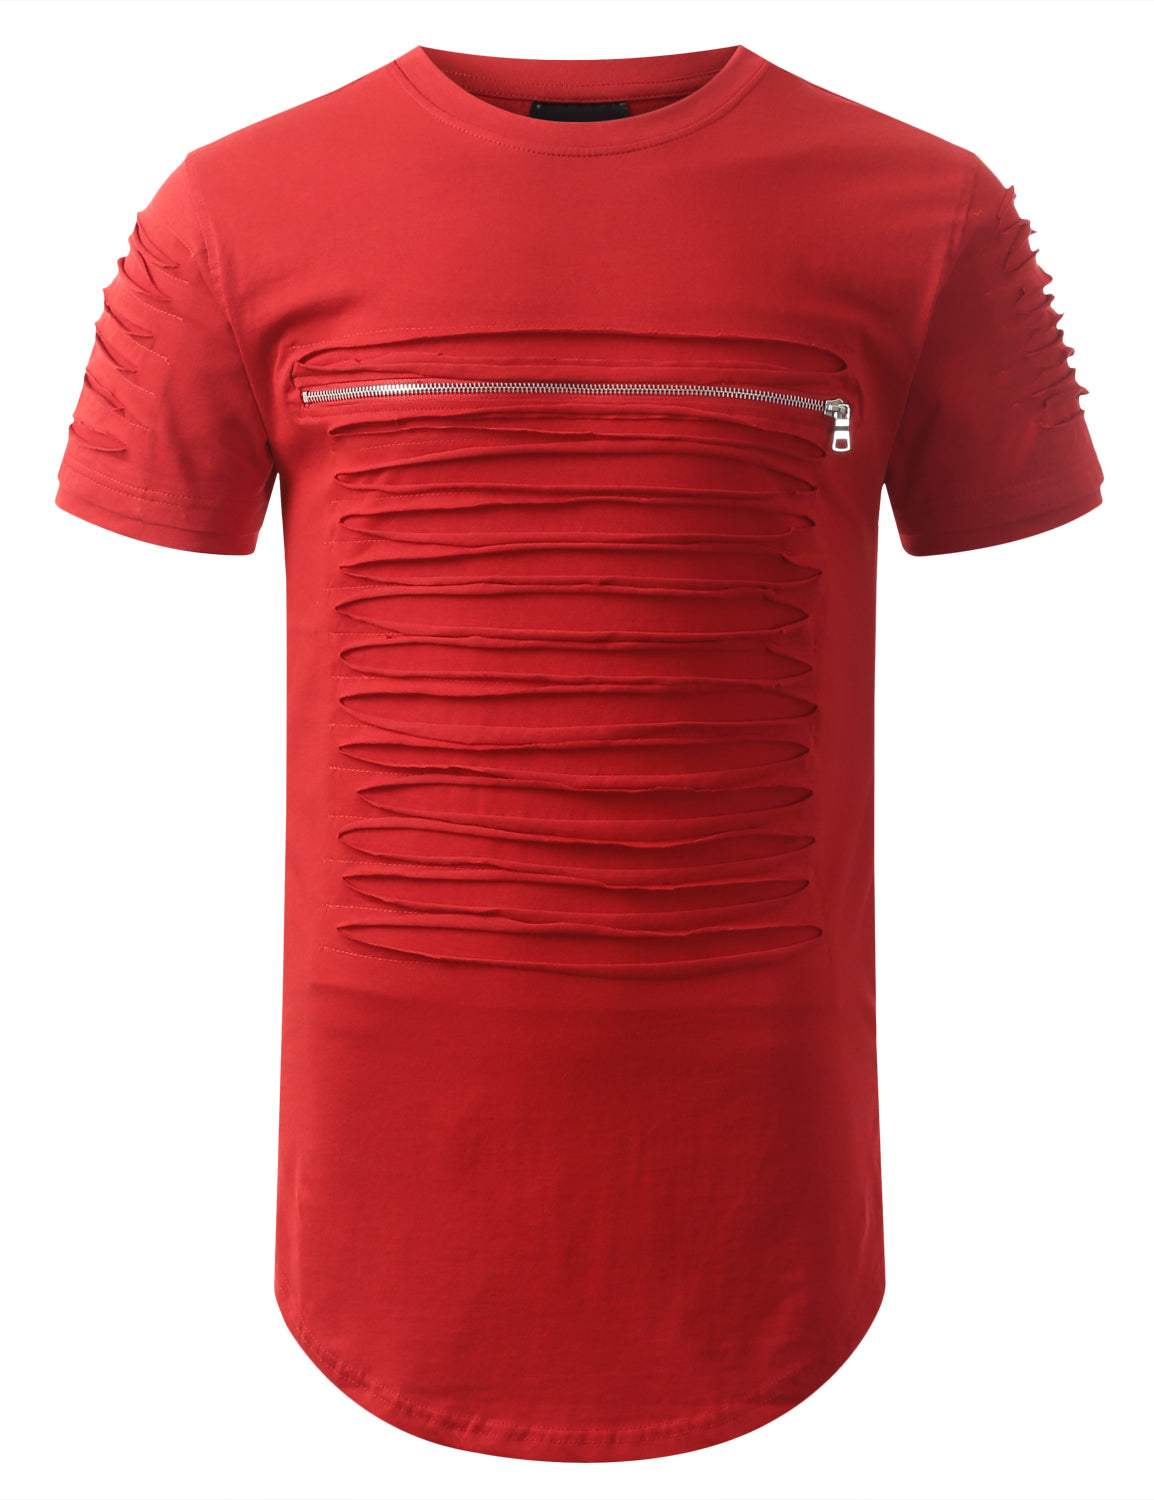 RED Ripped Zip Longline Crewneck T-shirts - URBANCREWS